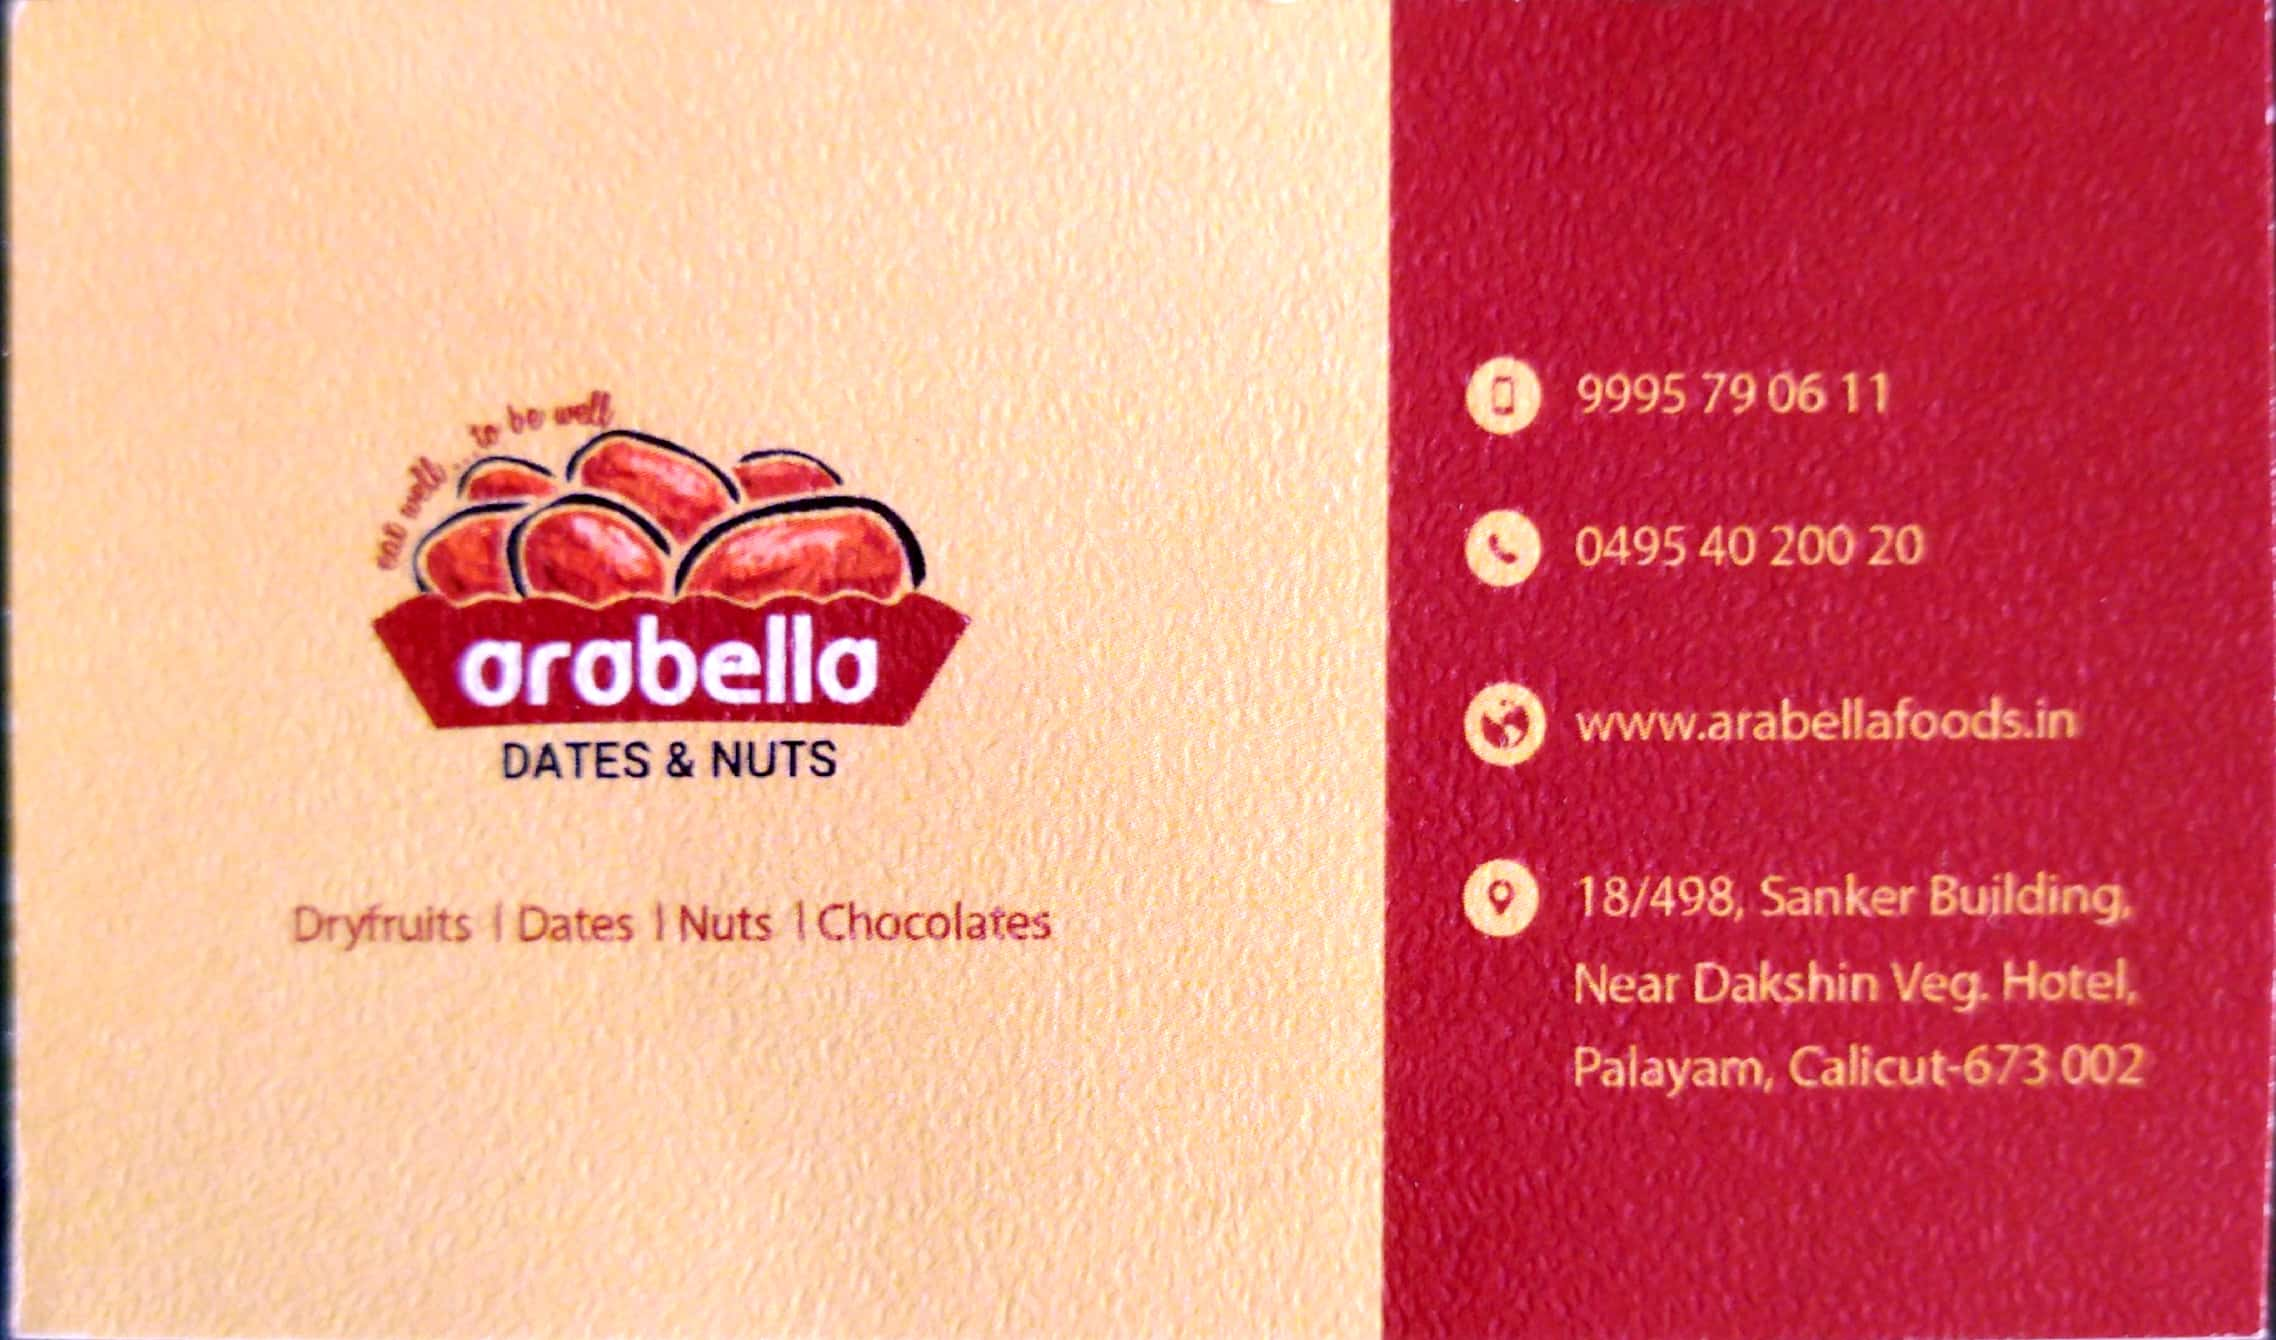 Arabella Dates and nuts, DRY FRUITS & CHOCOLATE,  service in Kozhikode Town, Kozhikode